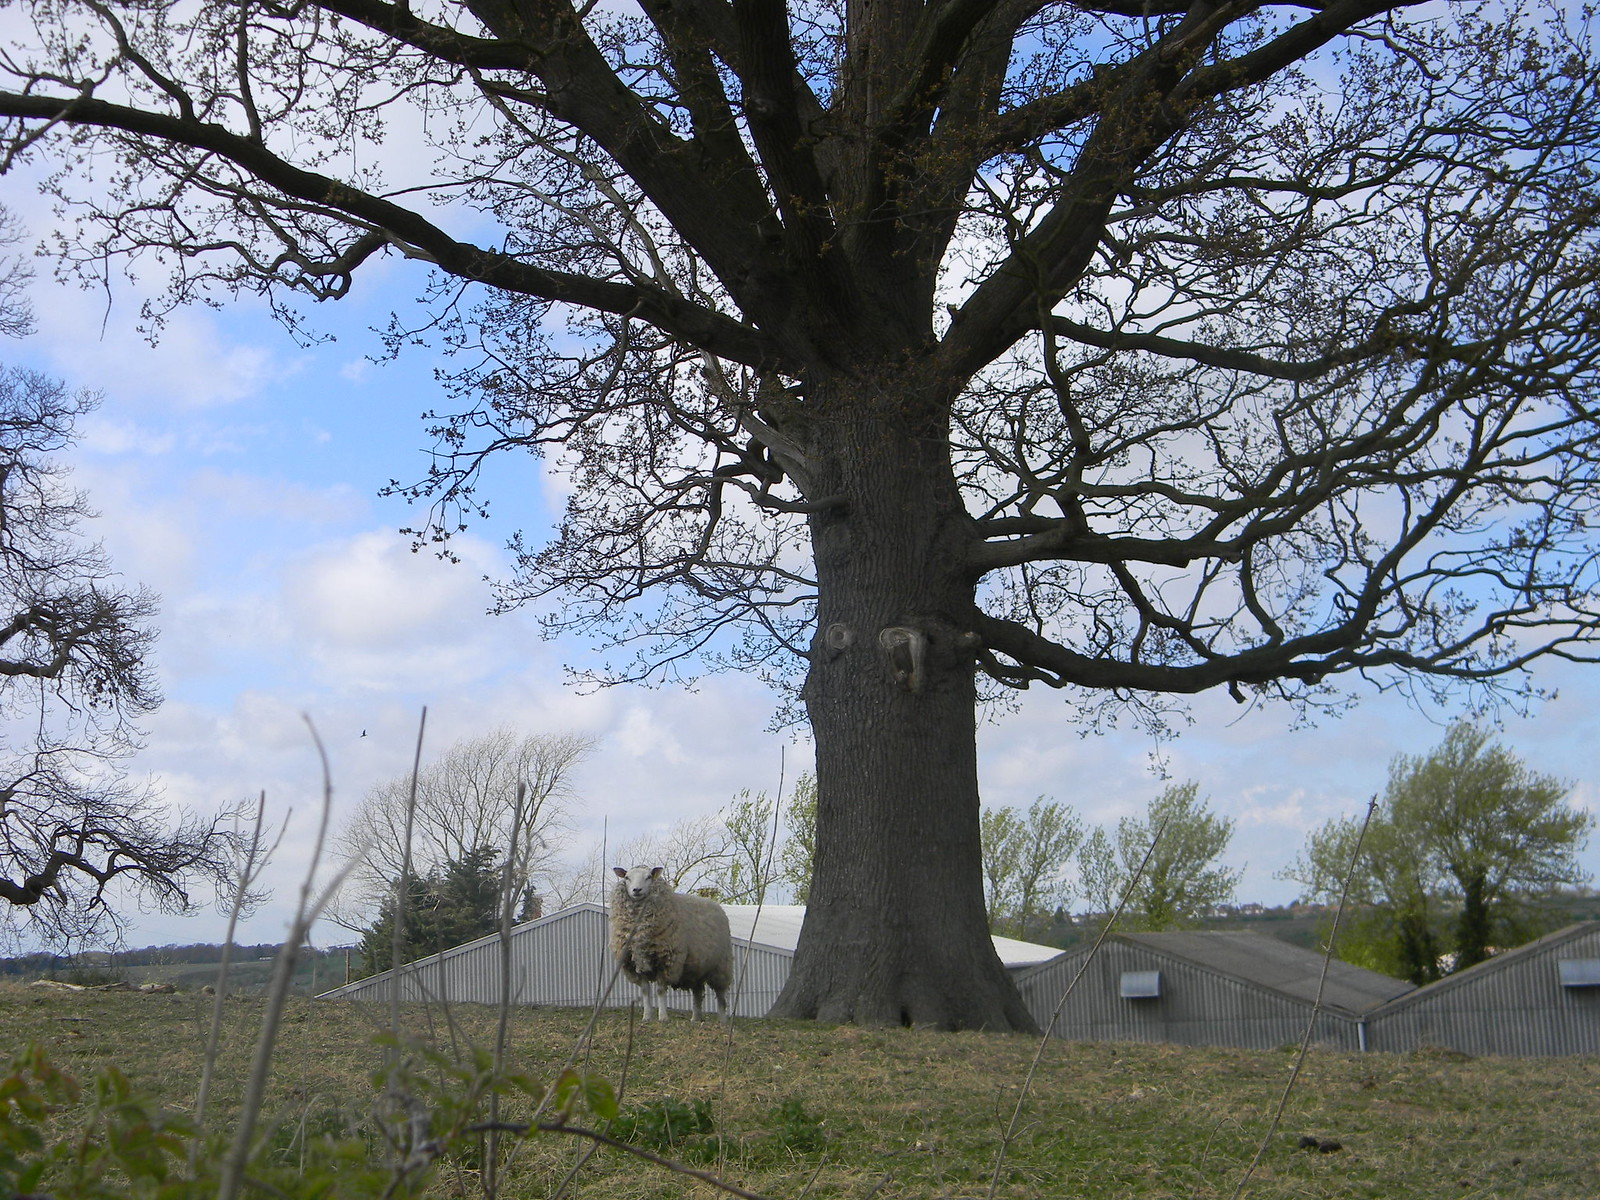 Sheep and tree Bekesbourne Circular